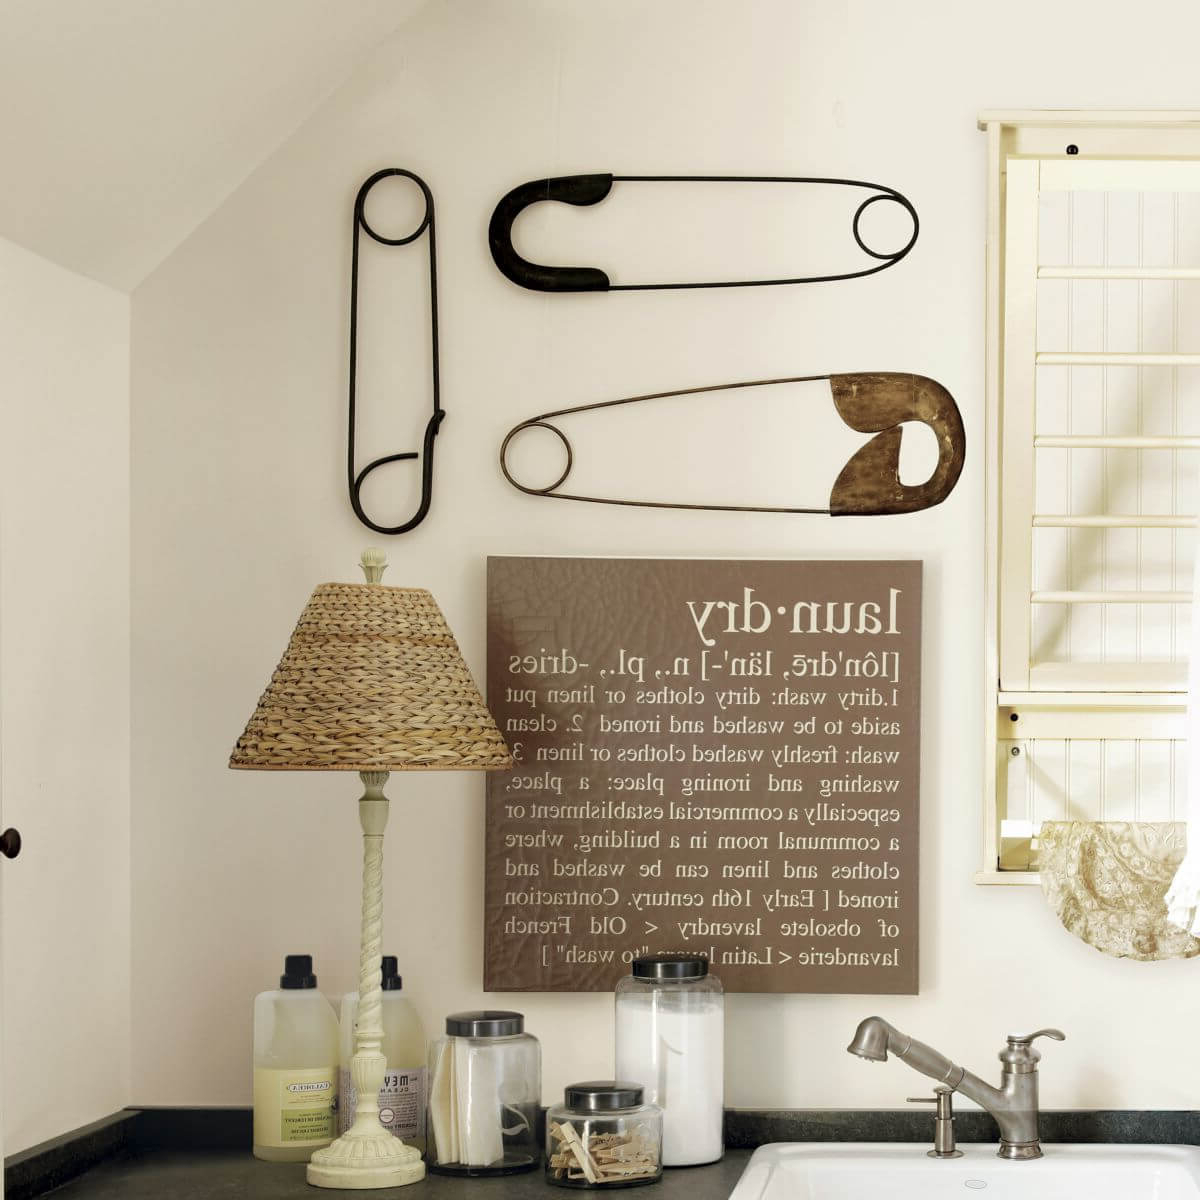 Most Current 25 Best Vintage Laundry Room Decor Ideas And Designs For 2019 Inside Metal Laundry Room Wall Decor (View 16 of 20)